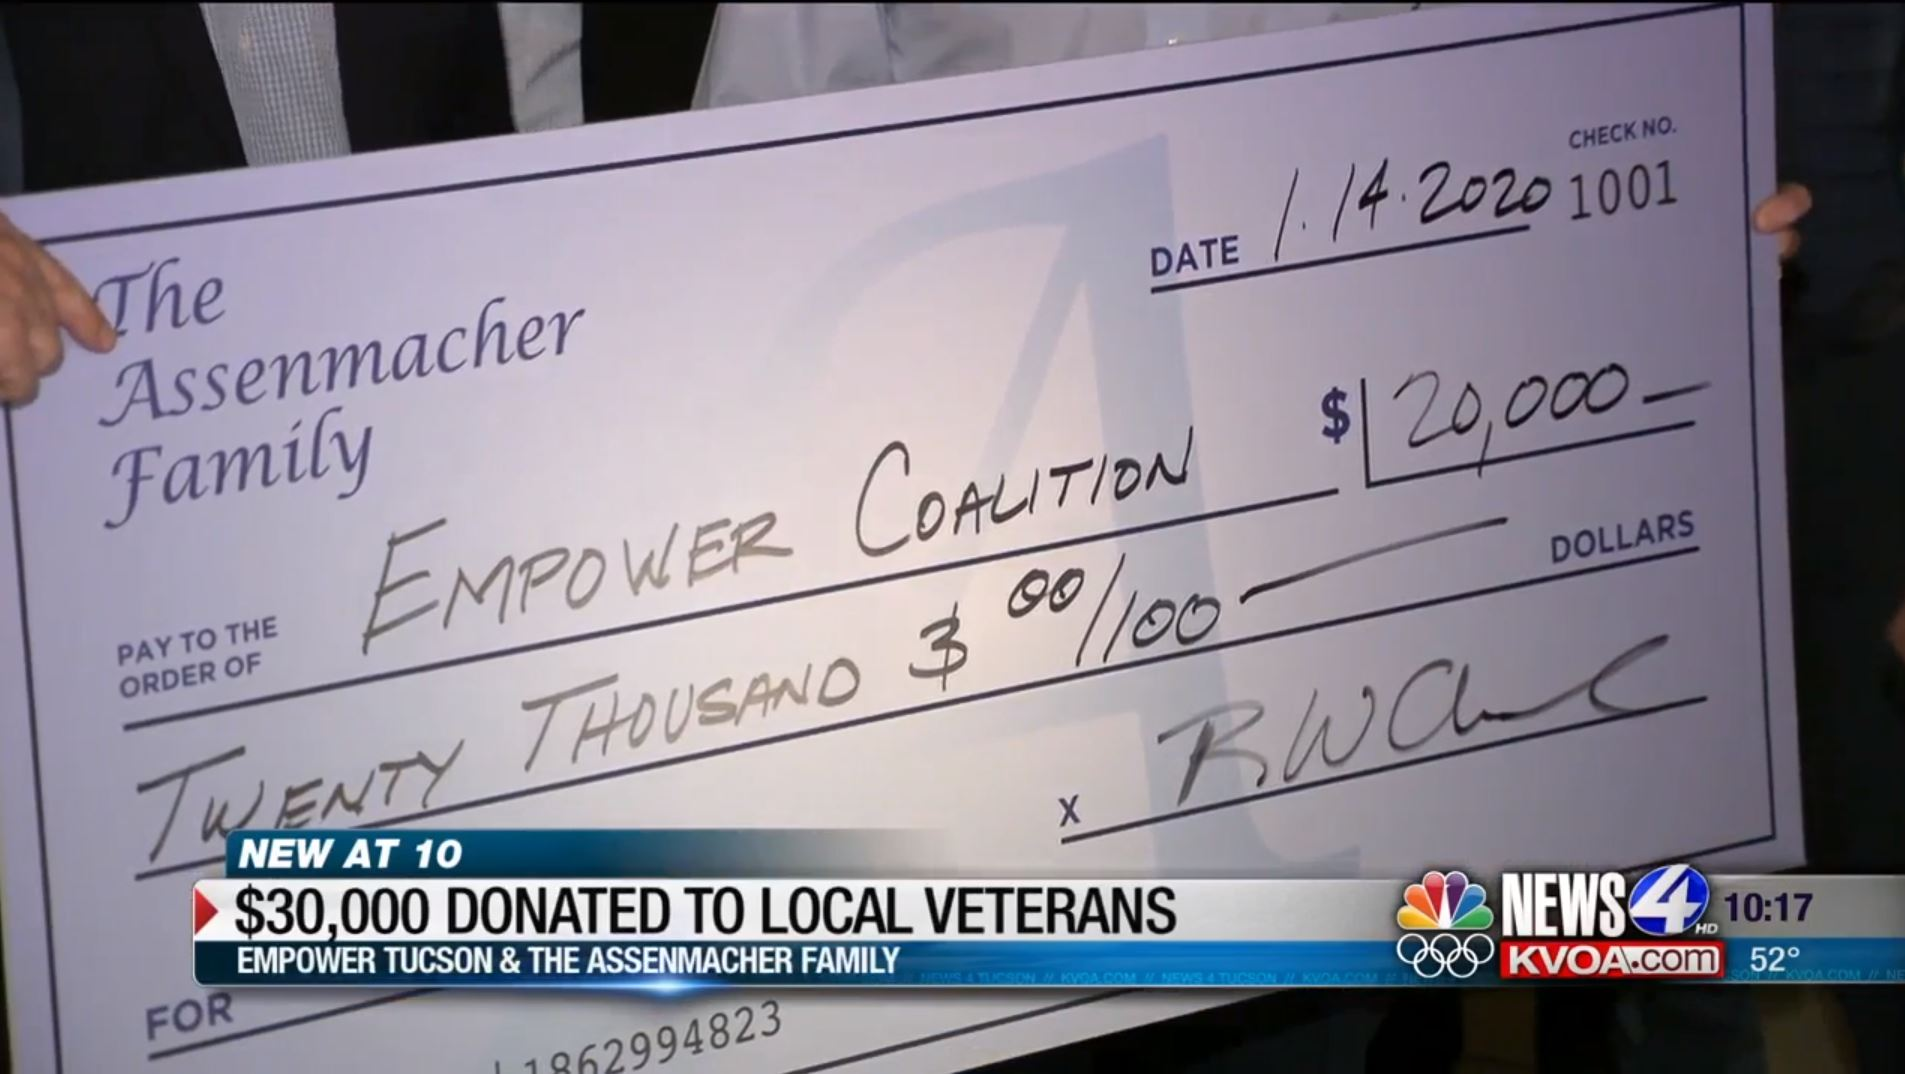 empower tucson gets donation